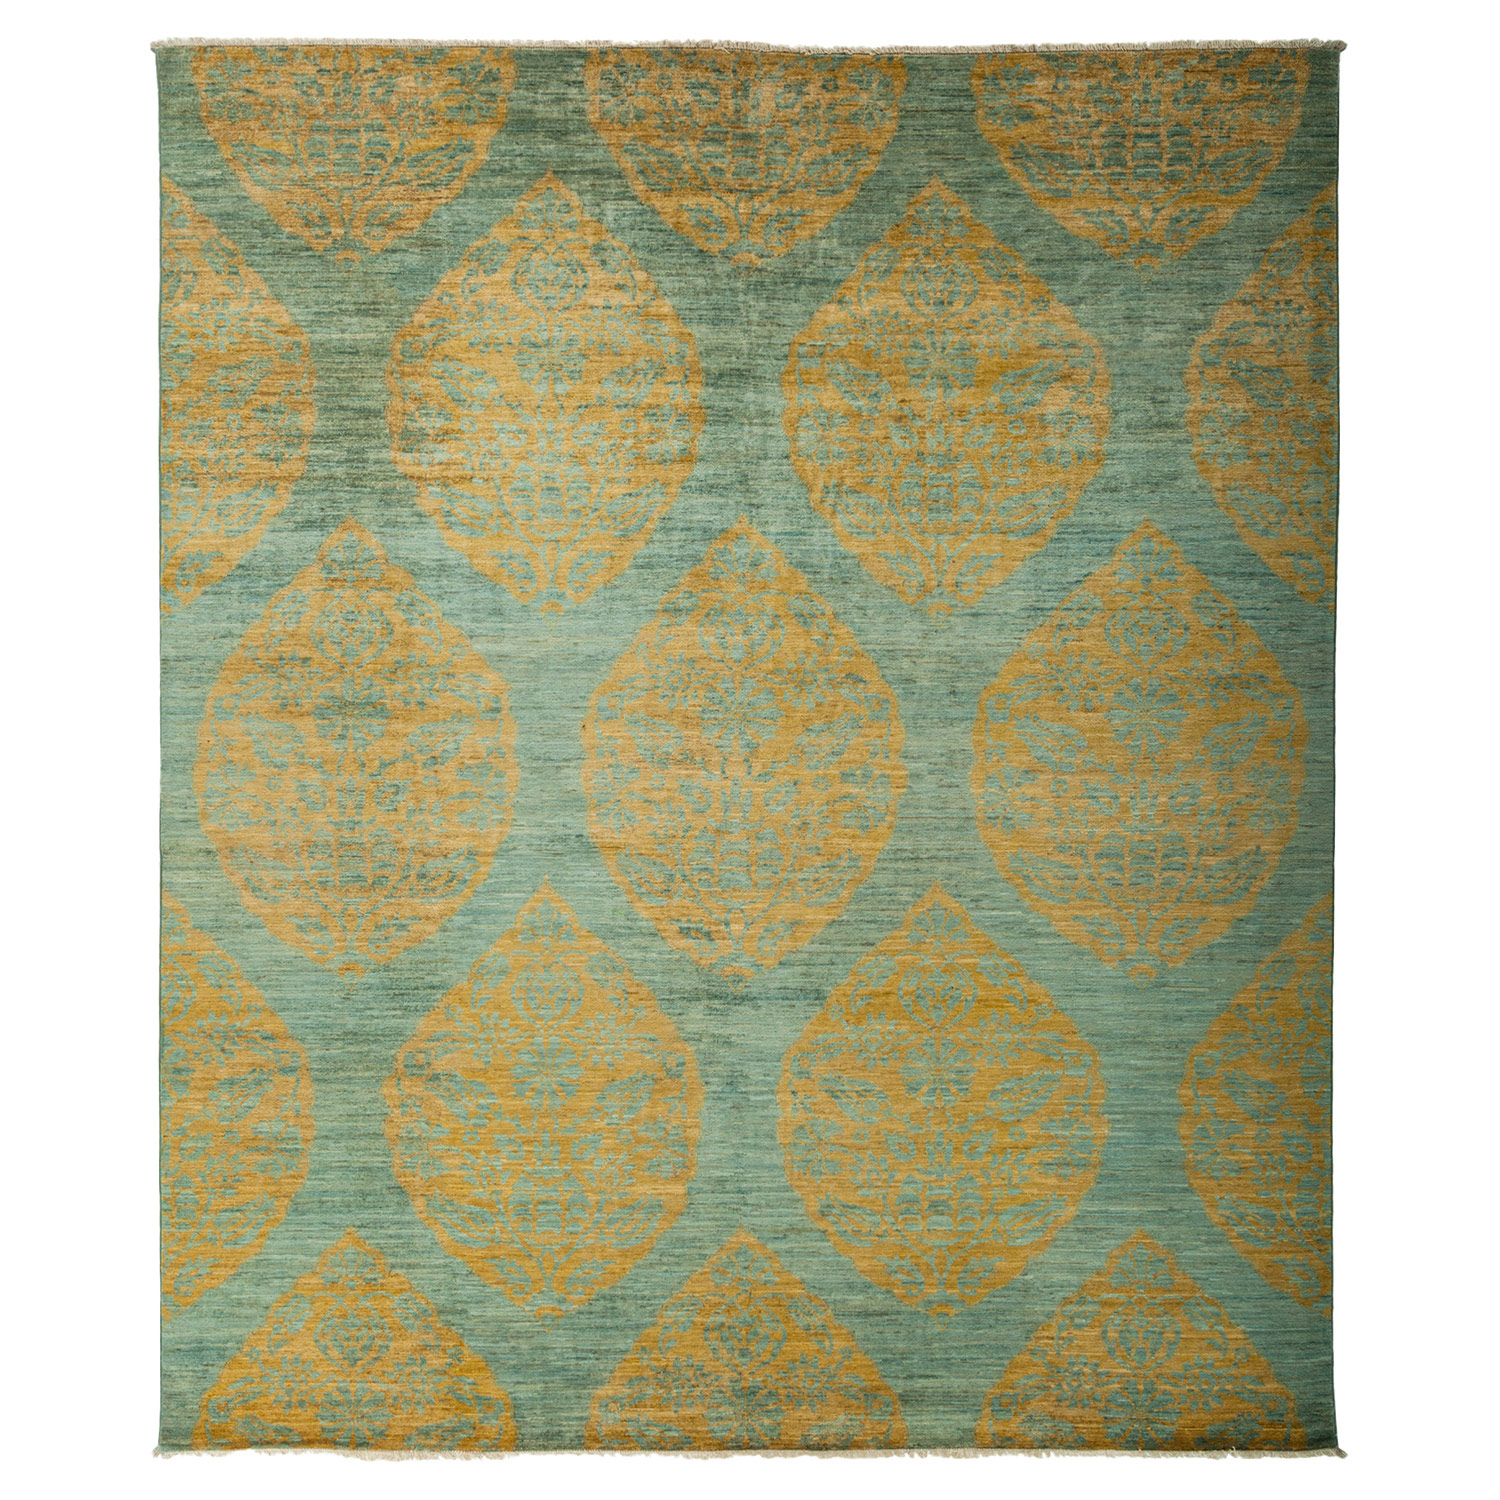 Munro Bazaar Gold Medallion Teal Wool Rug - 8'3 x 9'10